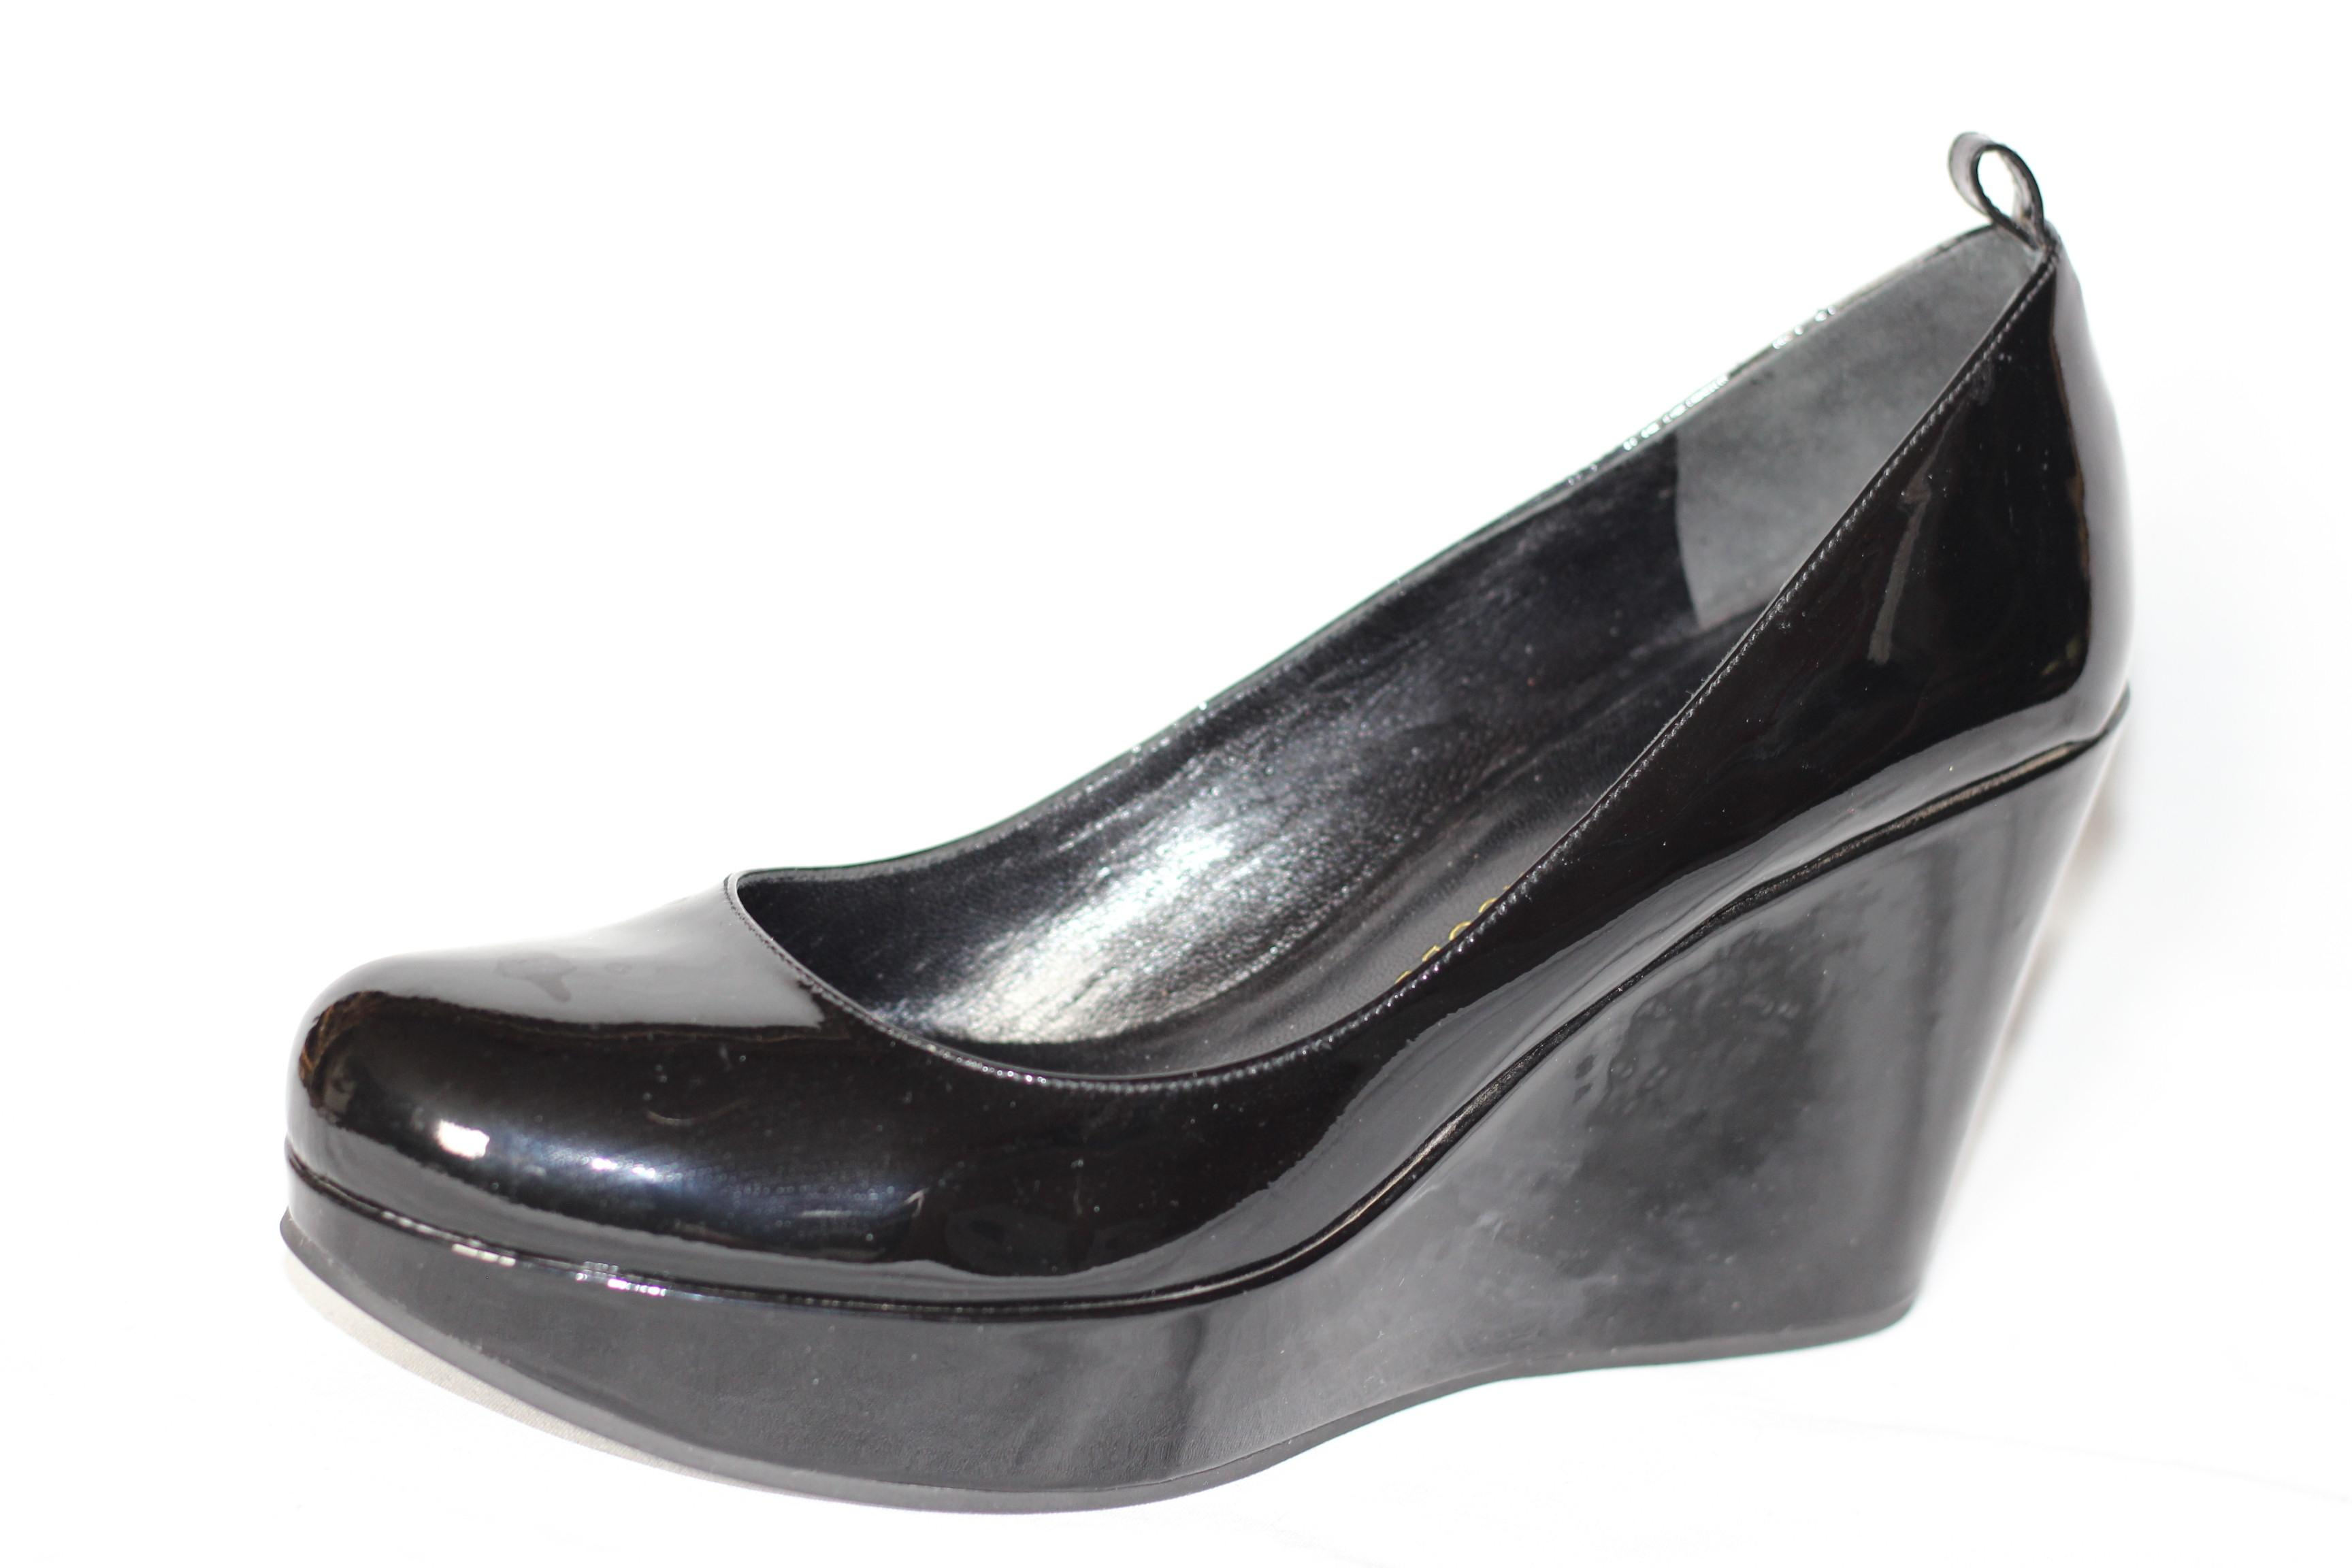 wiki free shipping pictures Marc by Marc Jacobs Patent Leather Wedge Pumps buy cheap free shipping free shipping buy Ah5aNT3U